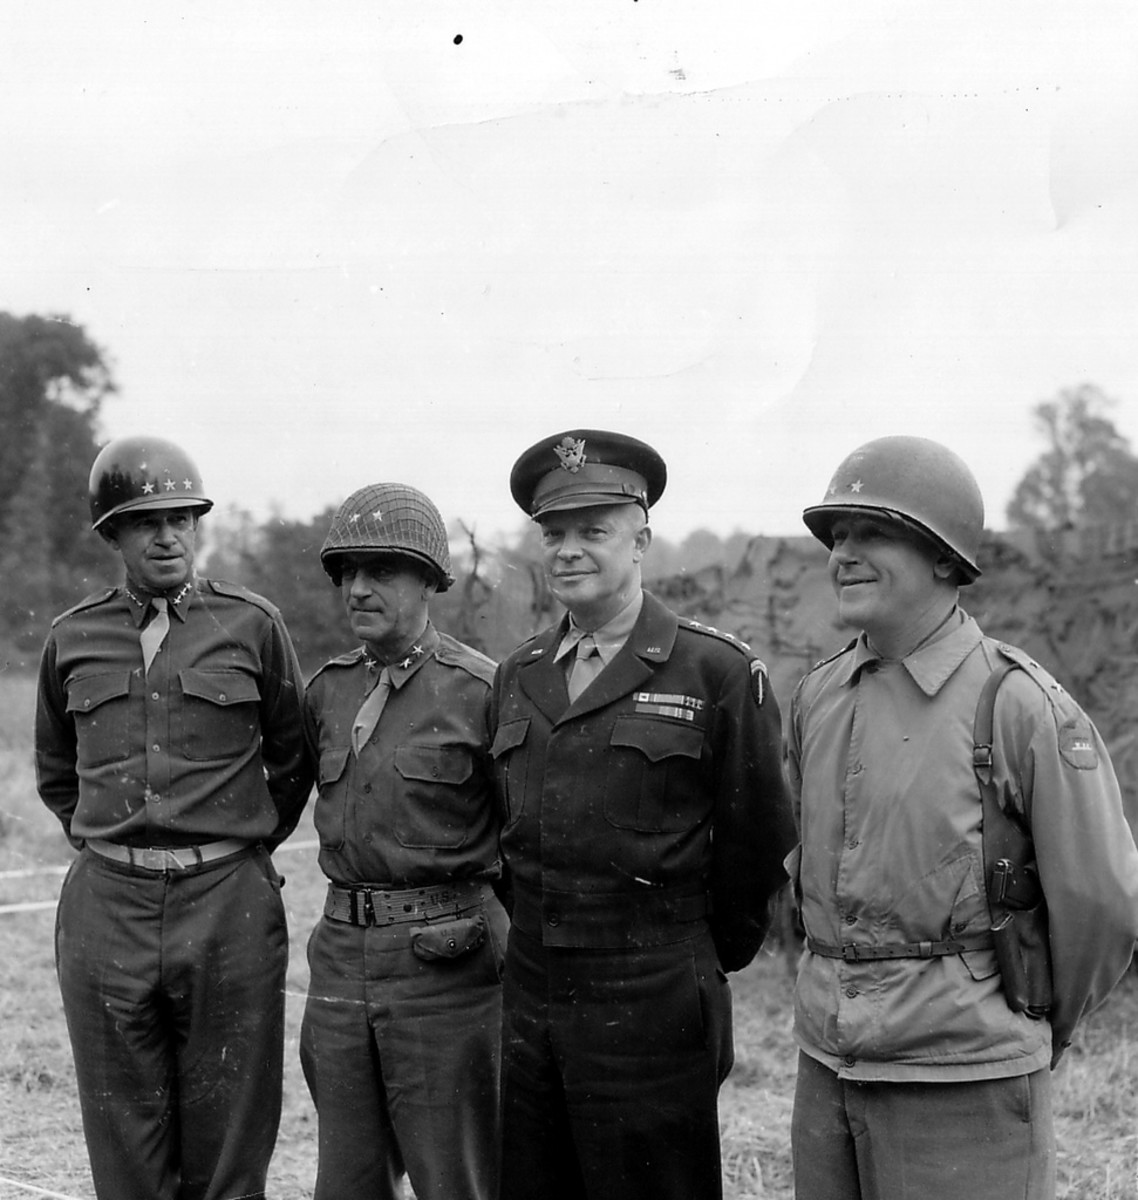 Gen. Gerow (second from left) with Bradley, Ike and Collins. July 1944 in France.